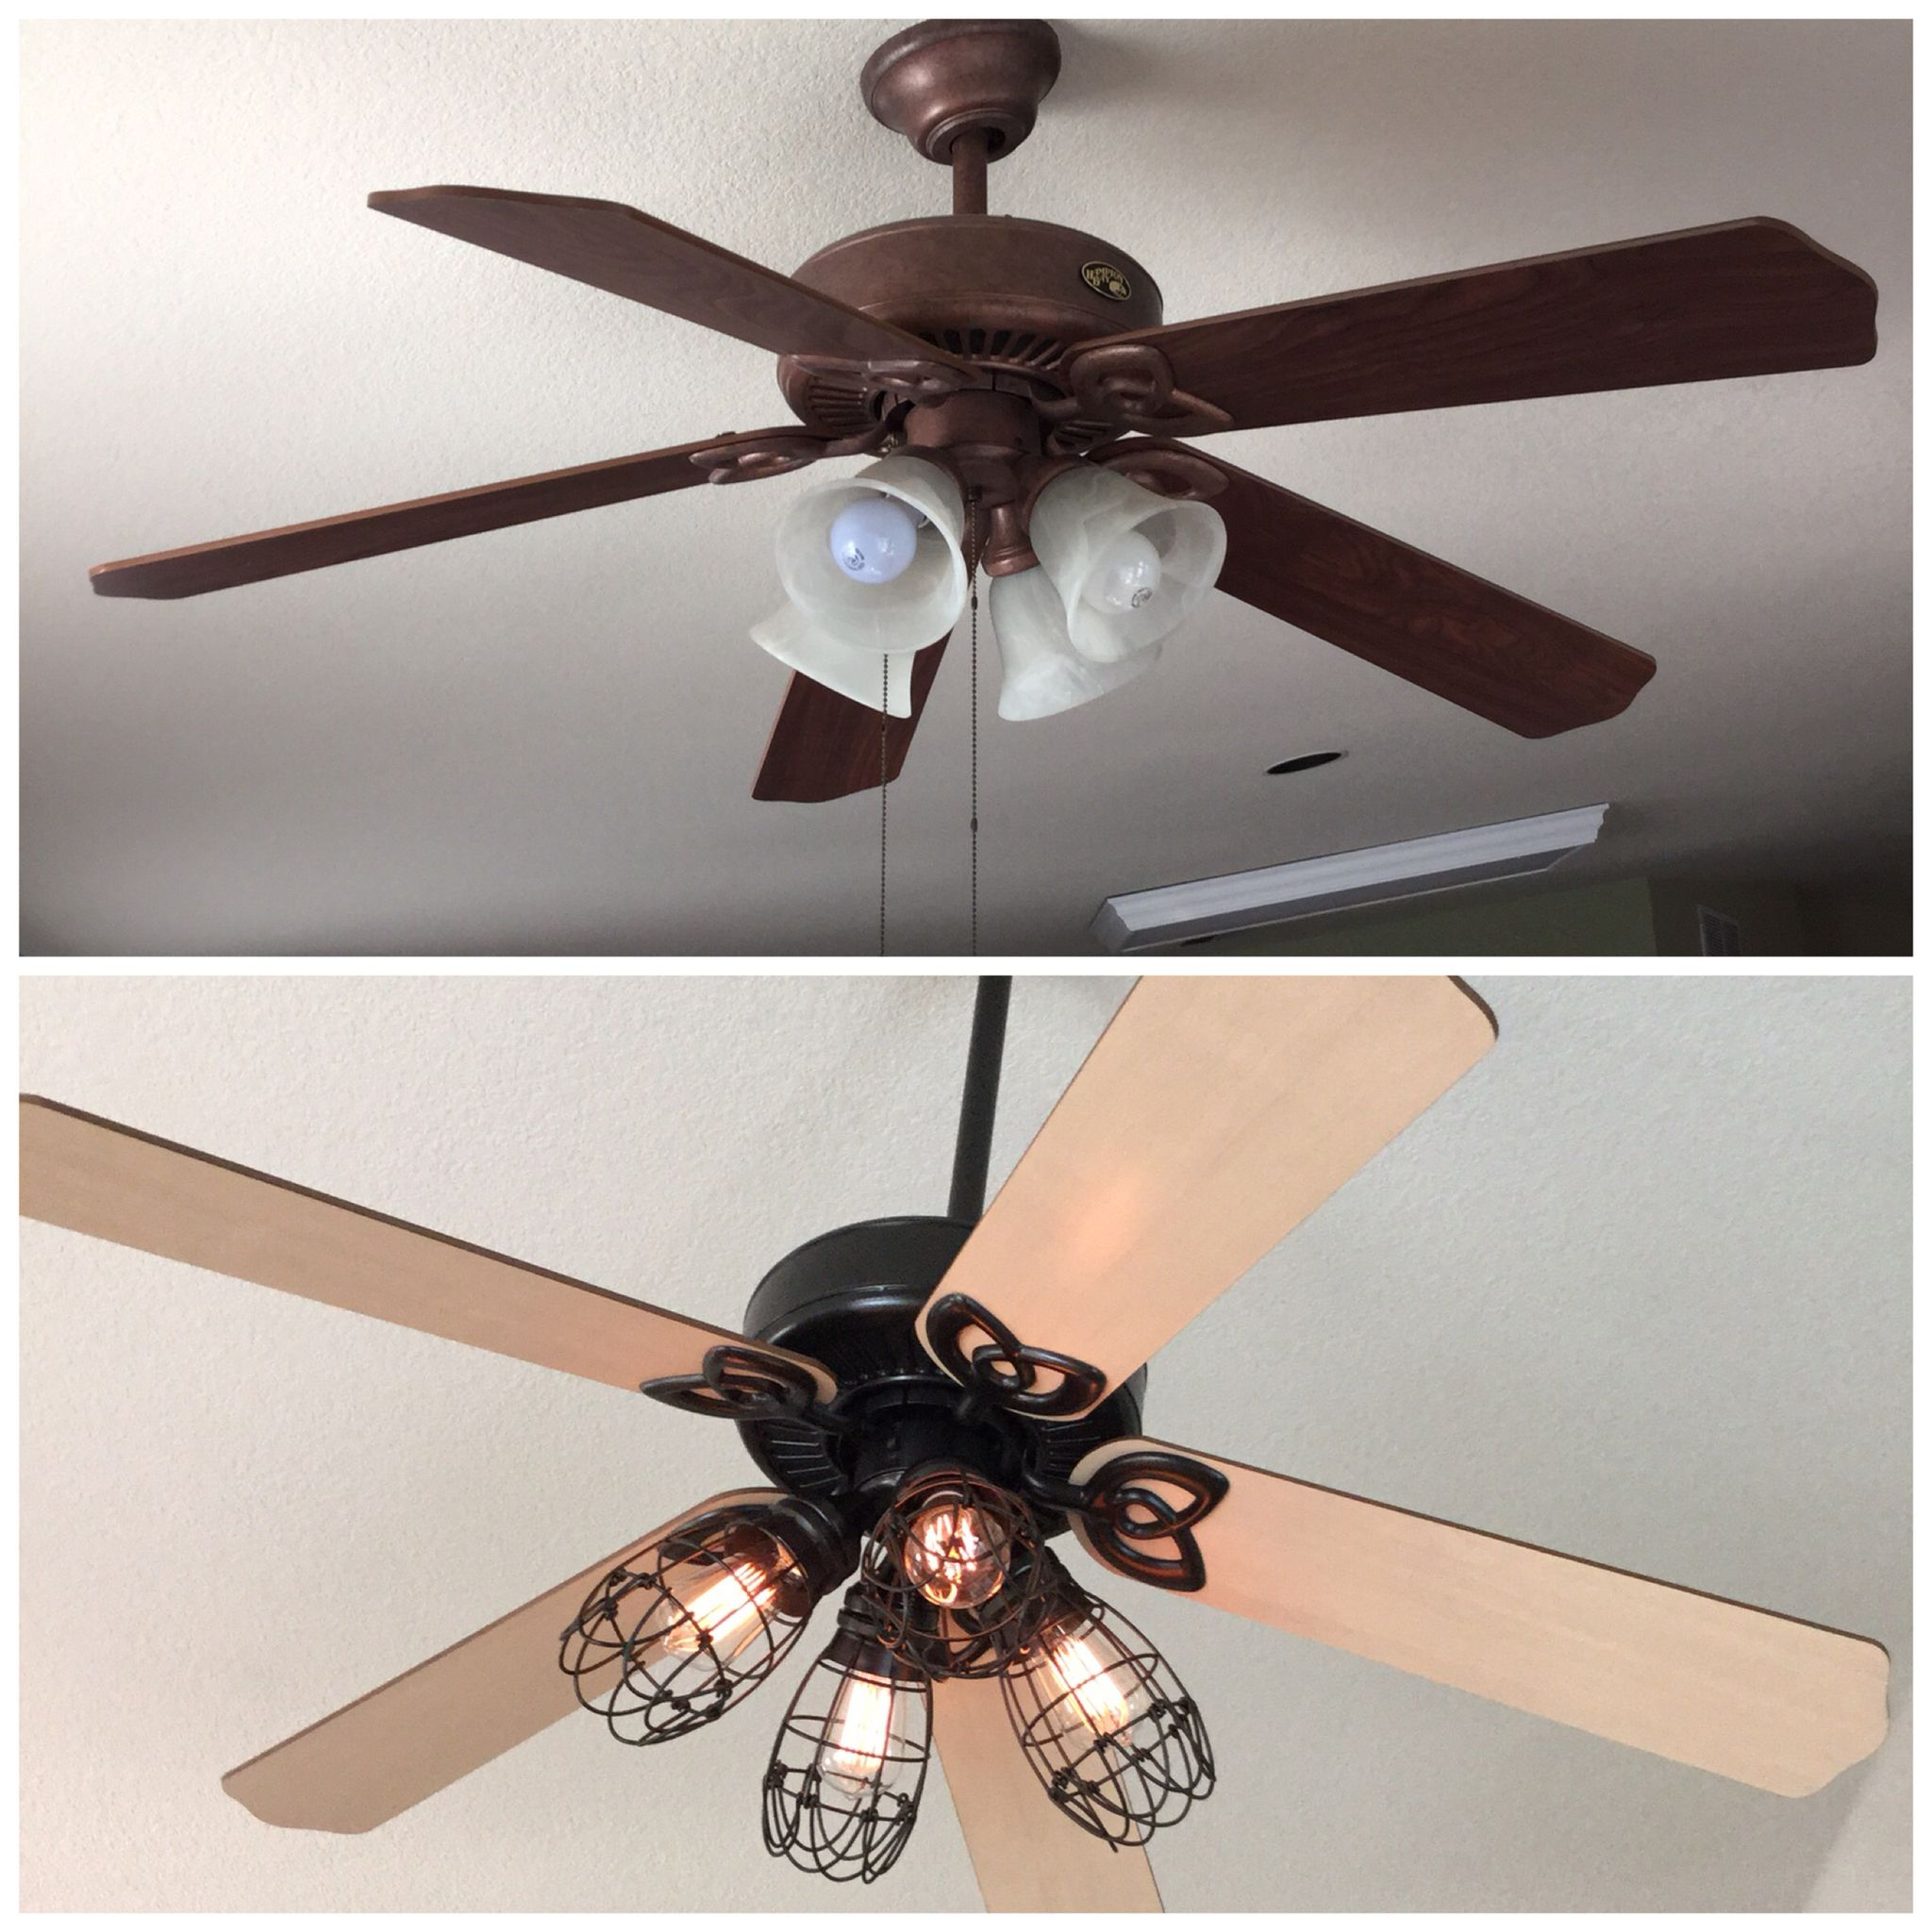 DIY ceiling fan makeover: Add cage bulb guards and Edison